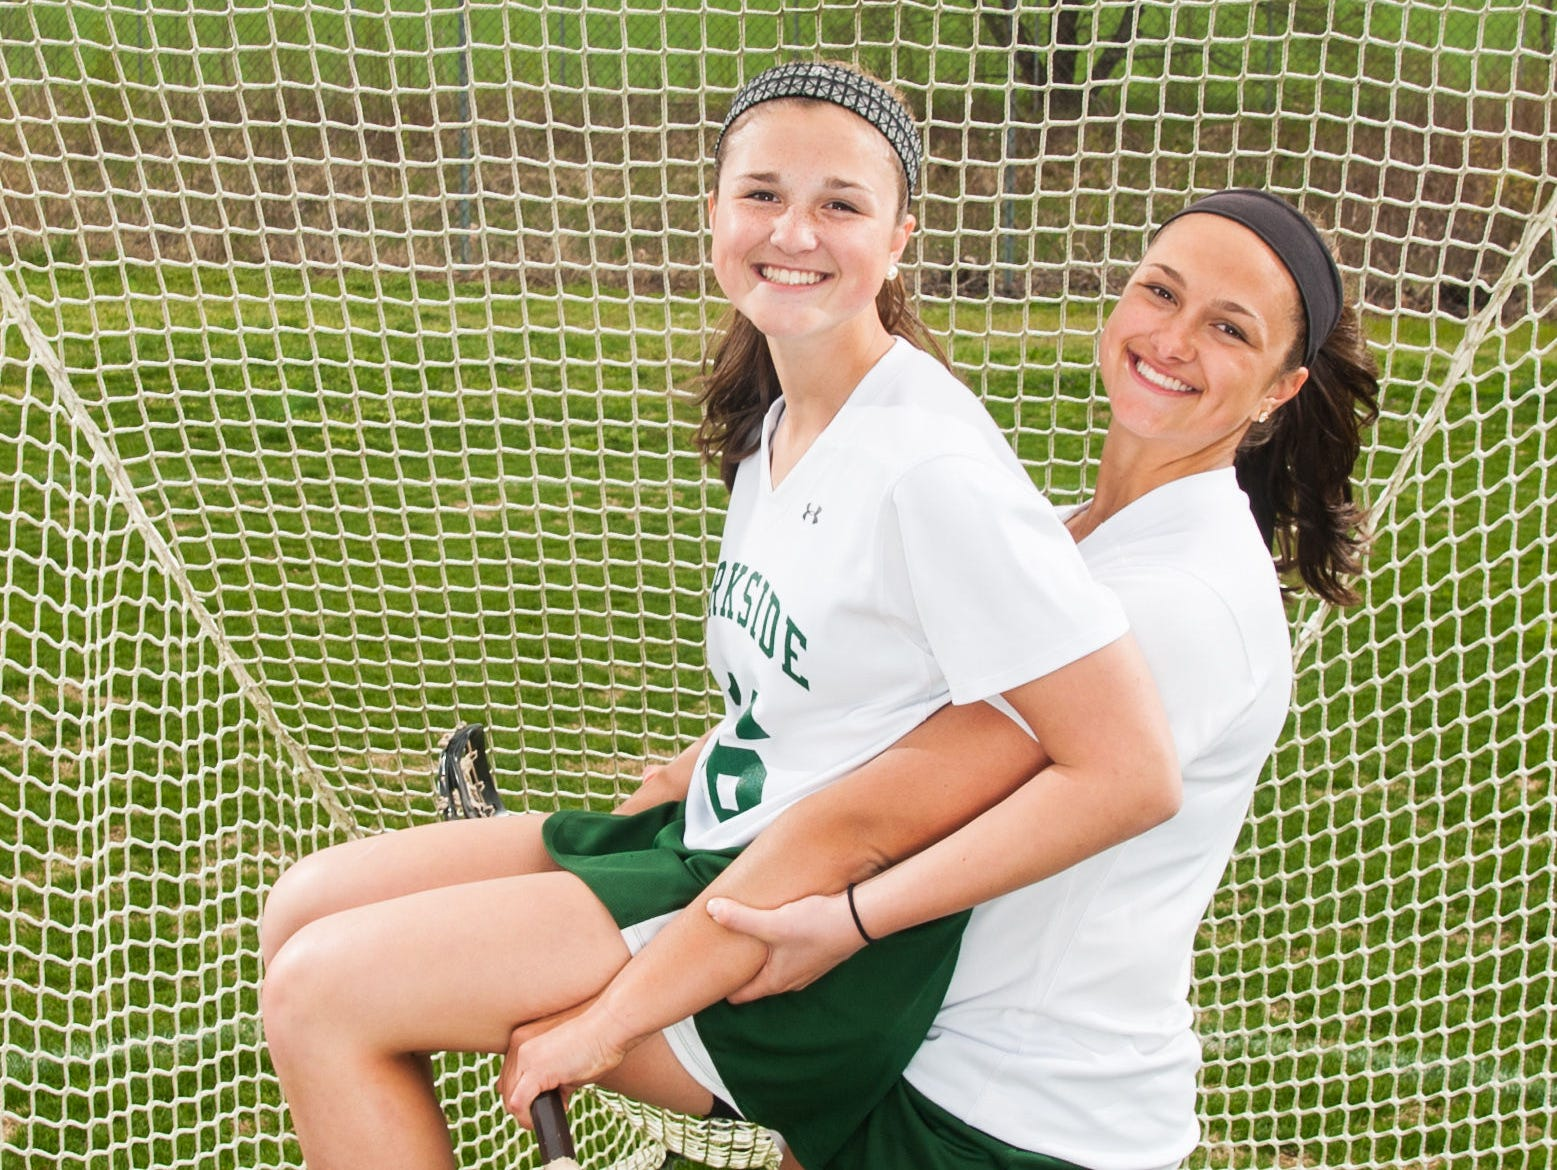 Parkside freshman Abigail (16) and senior Alivia (15) Roskovich are just one set of siblings the Rams girls lacrosse team is sporting this spring.